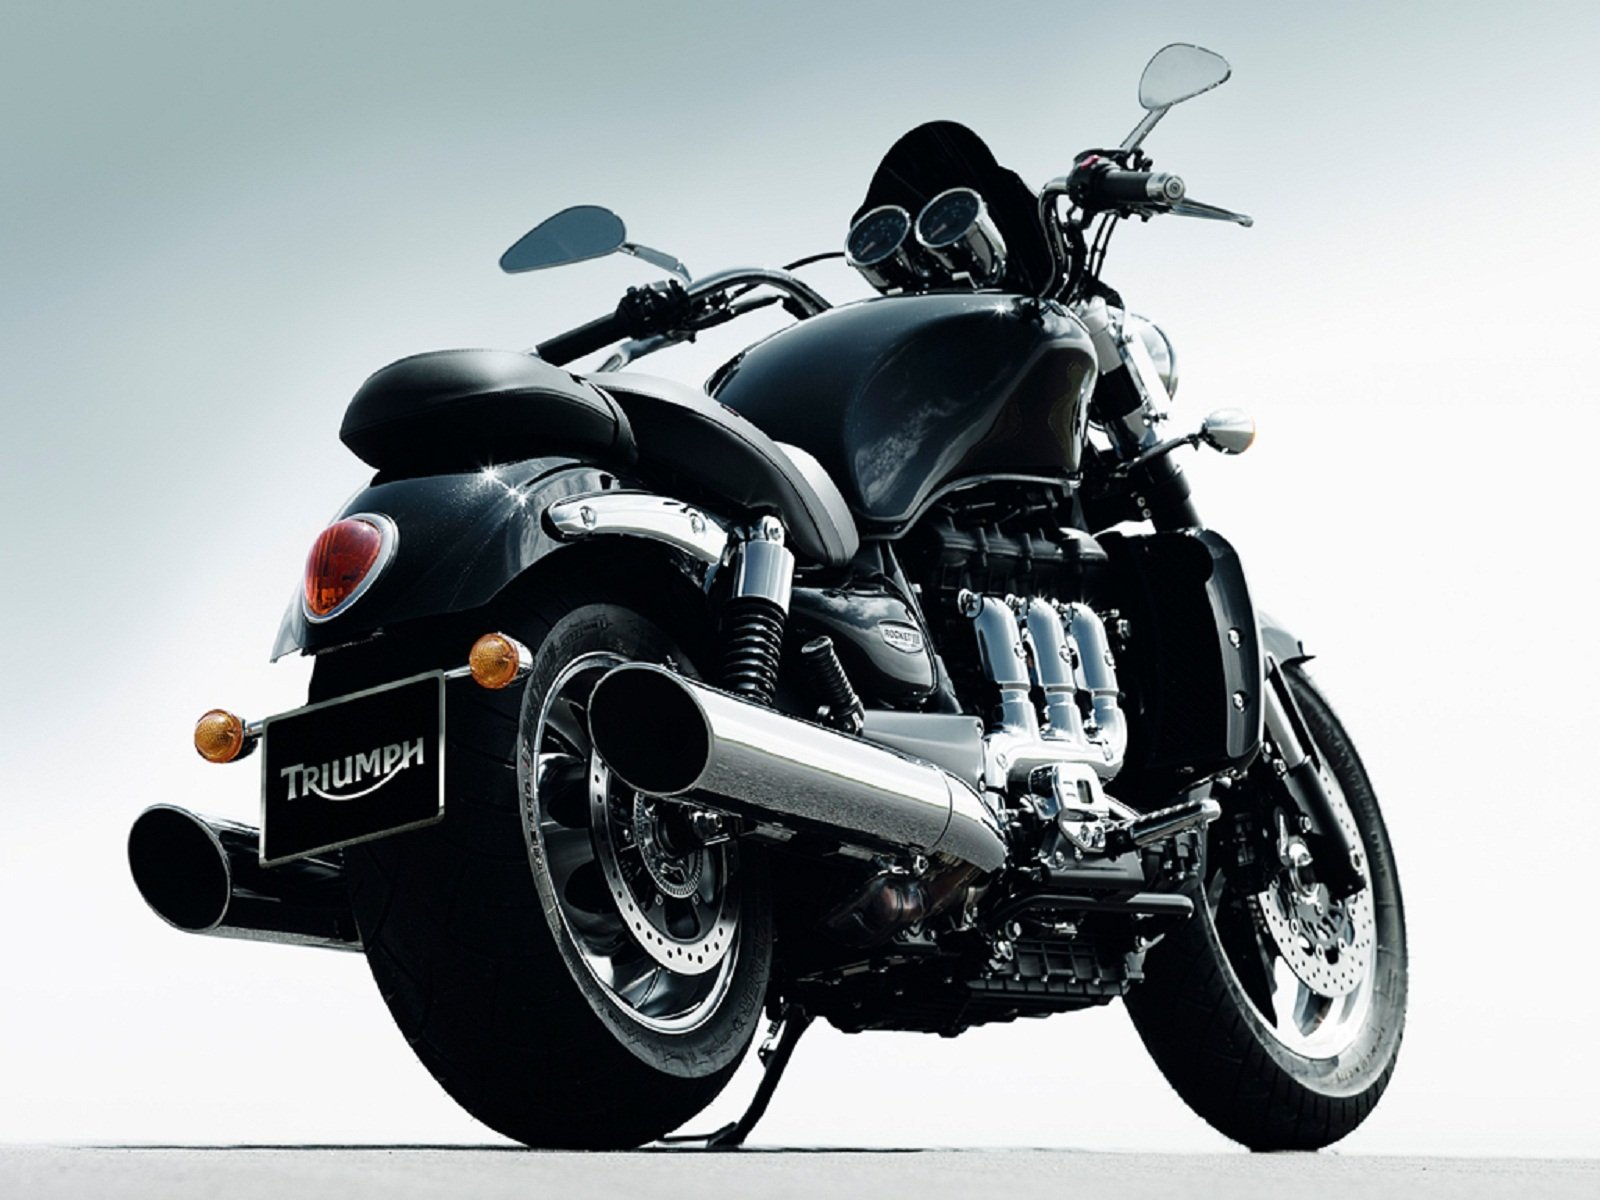 triumph rocket iii motorcycle - photo #2